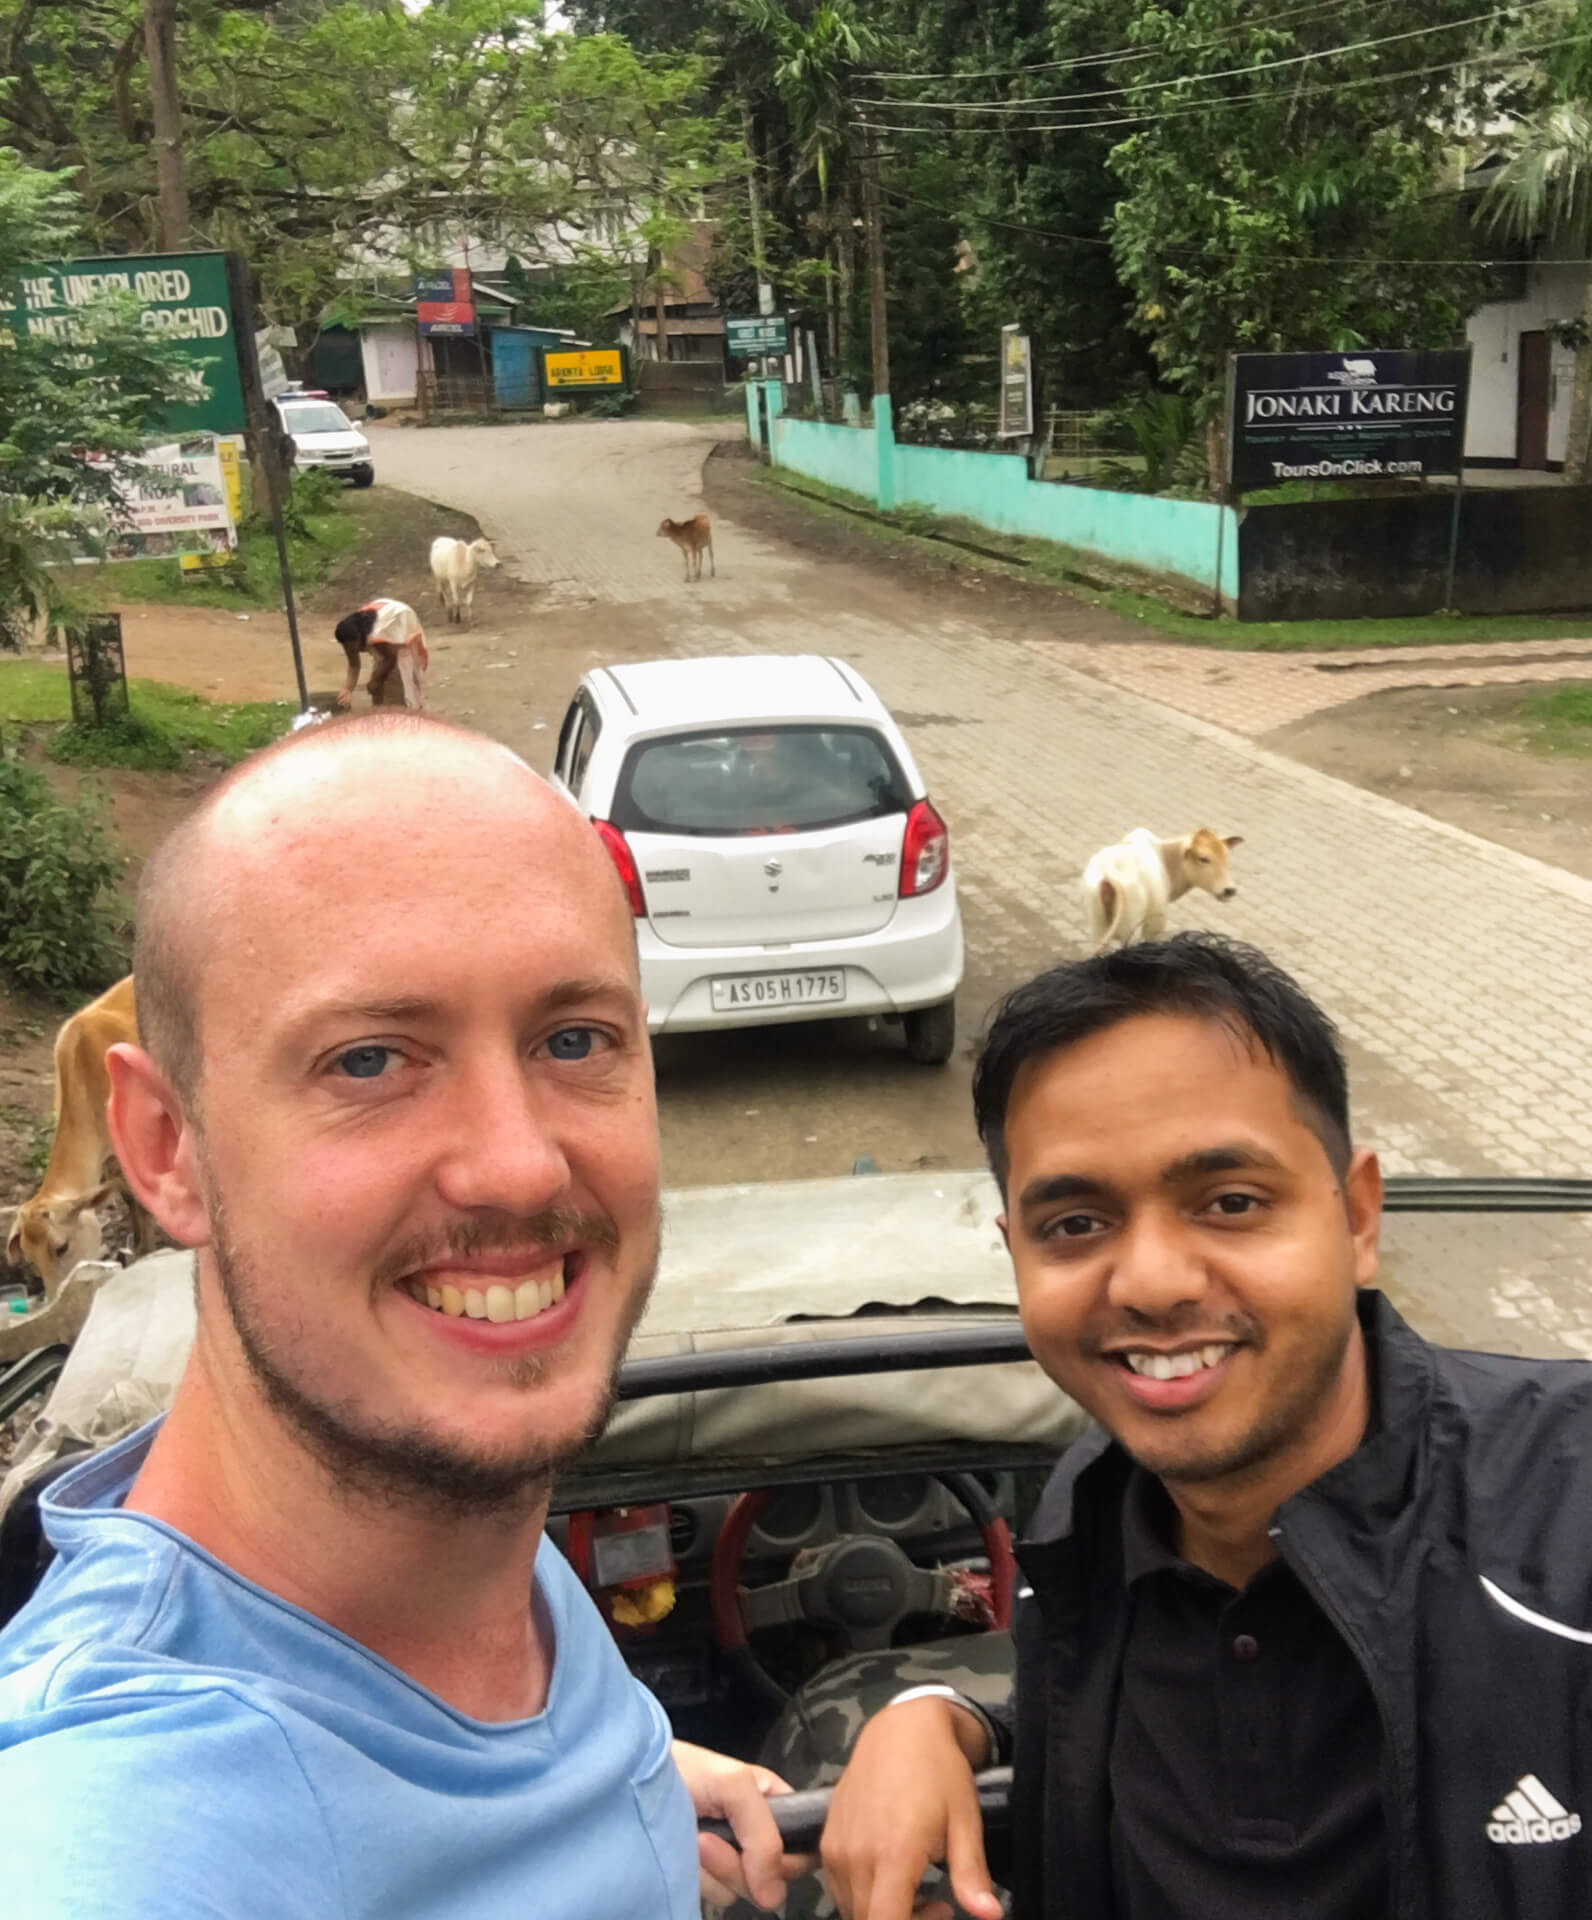 Rupam and I standing in the back of our safari vehicle on a street before entering the national park.